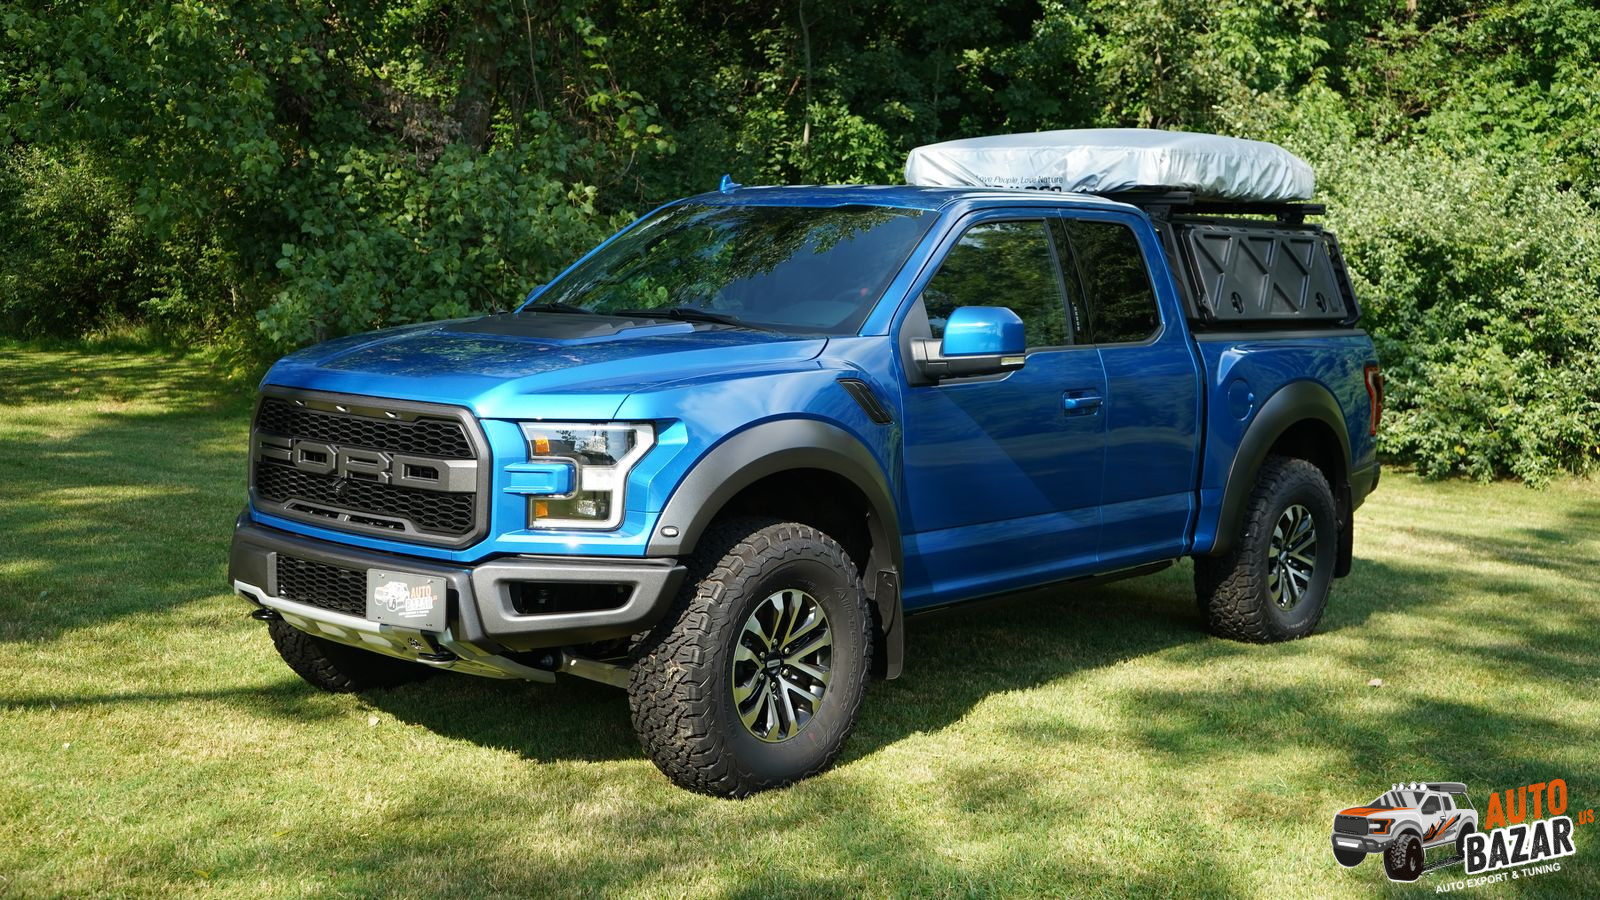 /storage/inventories/1063/1063 2020 FORD RAPTOR BLUE 2DOOR iEAMPER 77426  (2).JPG